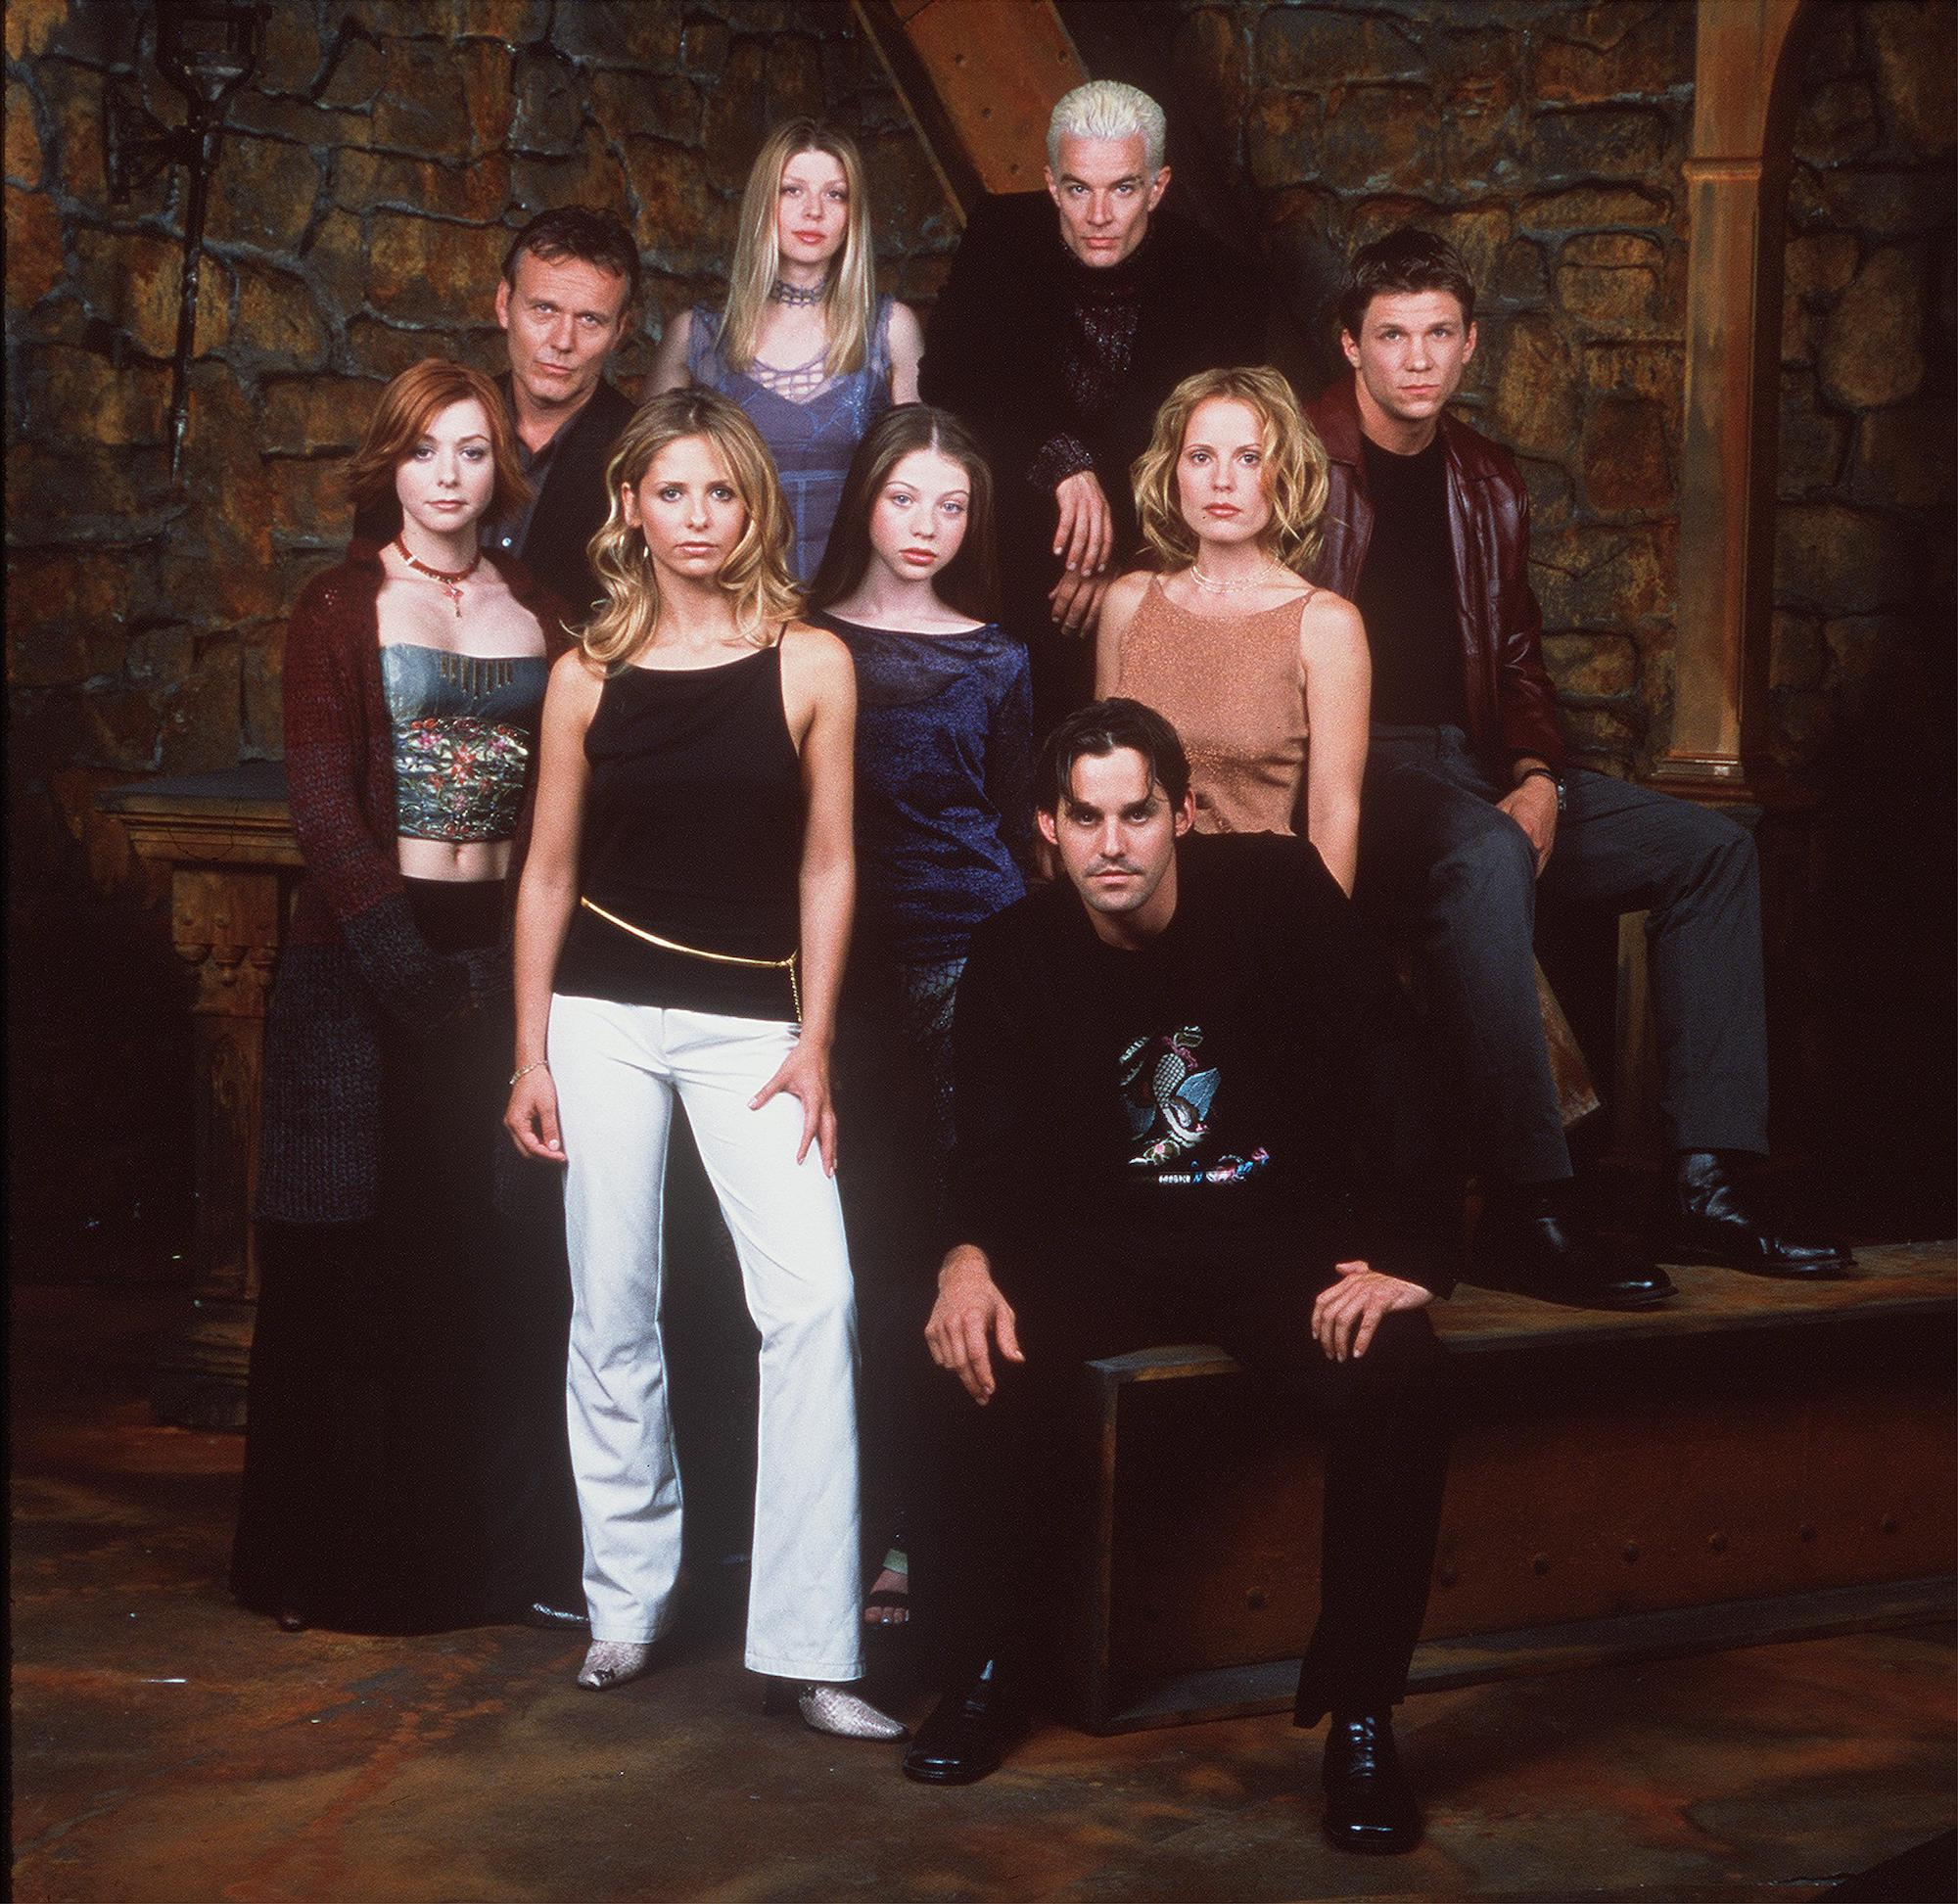 """The cast of 20th Century Fox's """"Buffy The Vampire Slayer"""" pose for a portrait Oct. 10, 2000."""